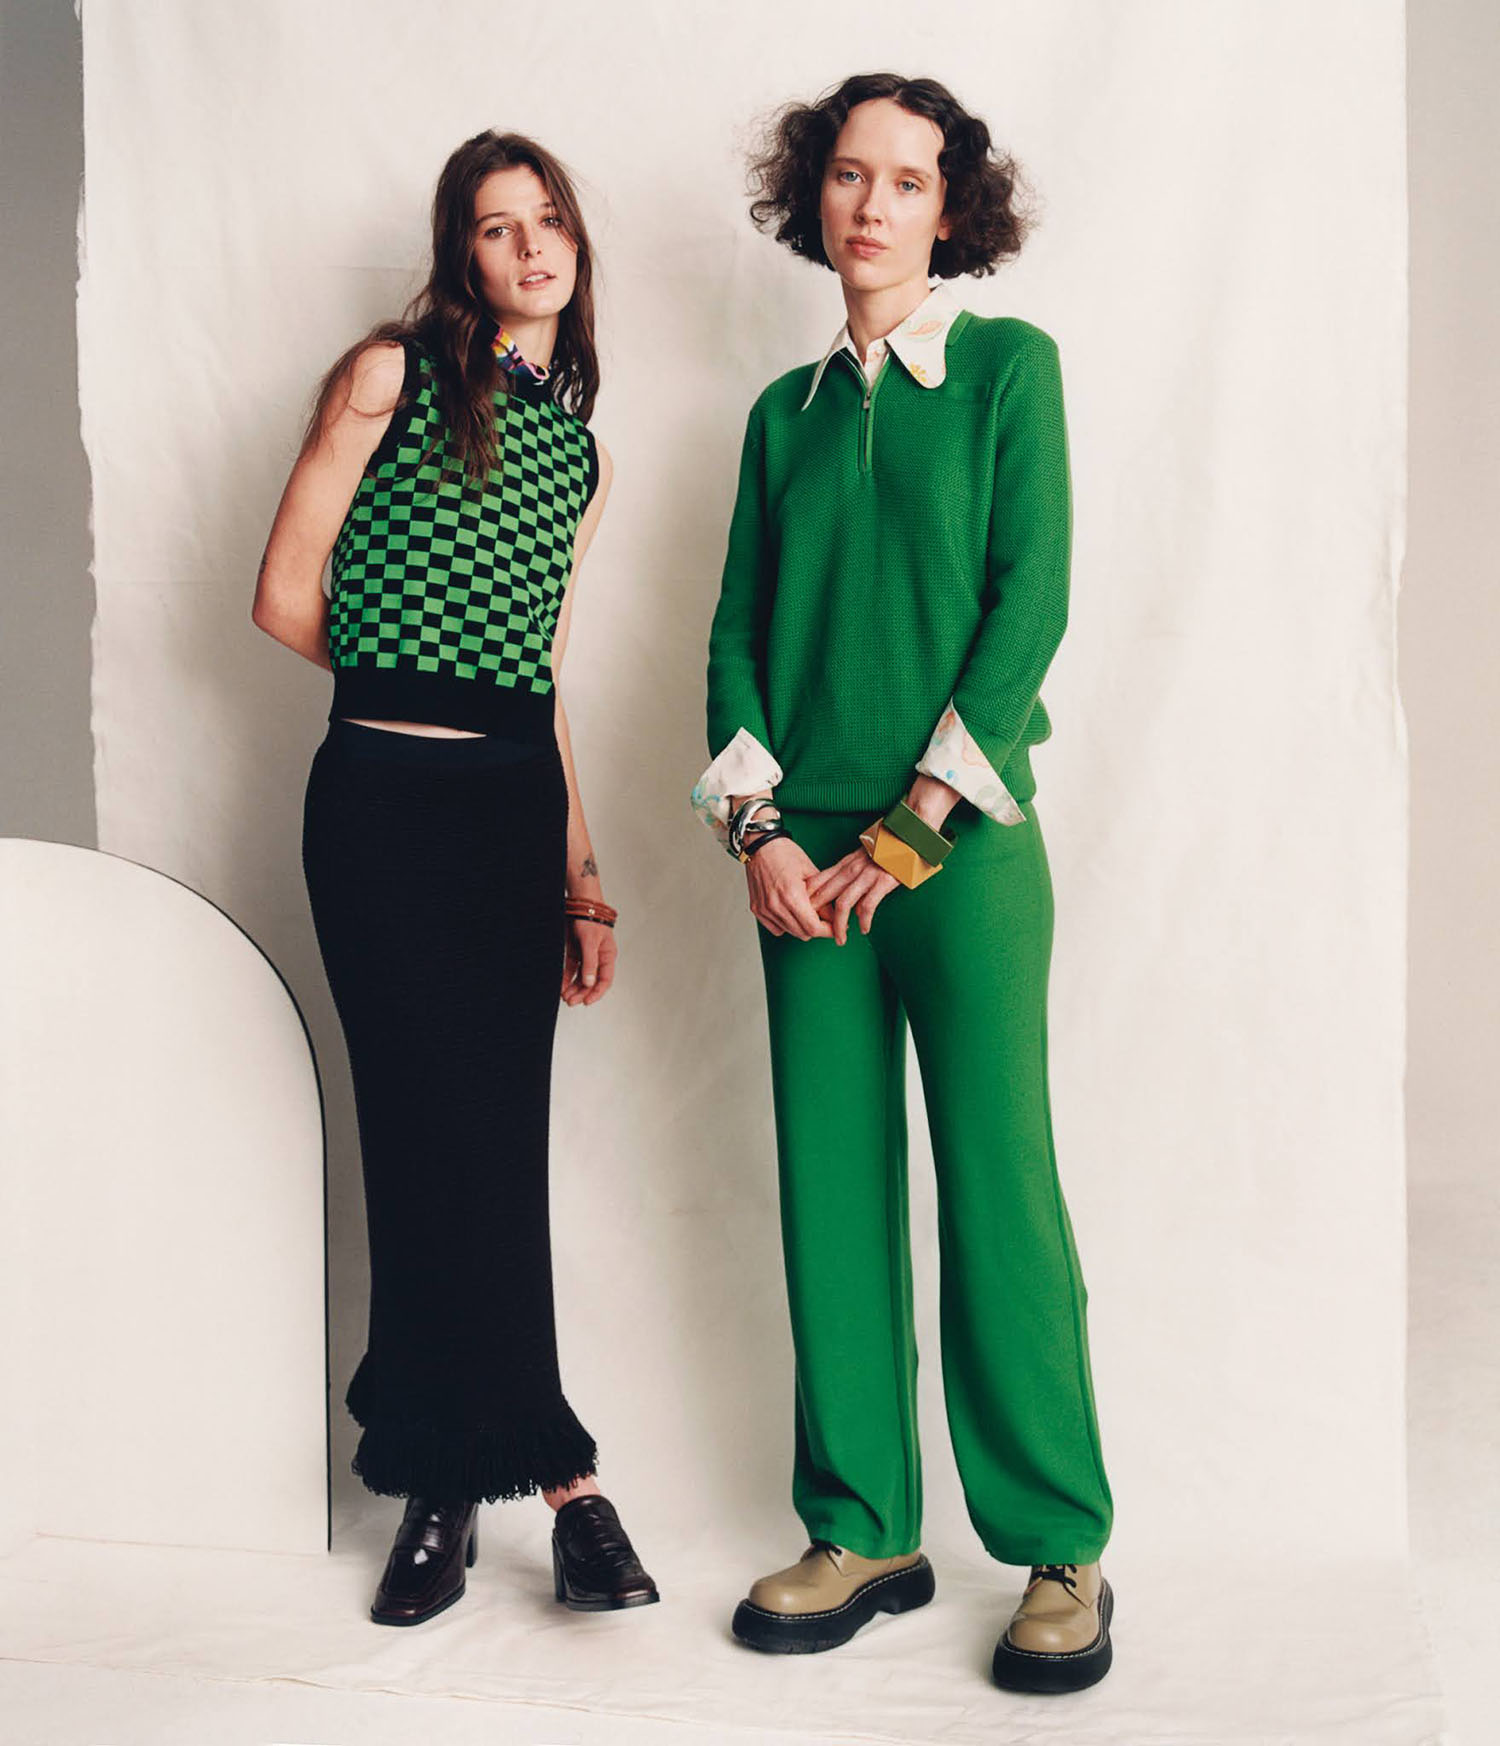 Effie Steinberg and Charlotte O'Donnell by Krisztián Éder for WSJ. Magazine Spring 2021